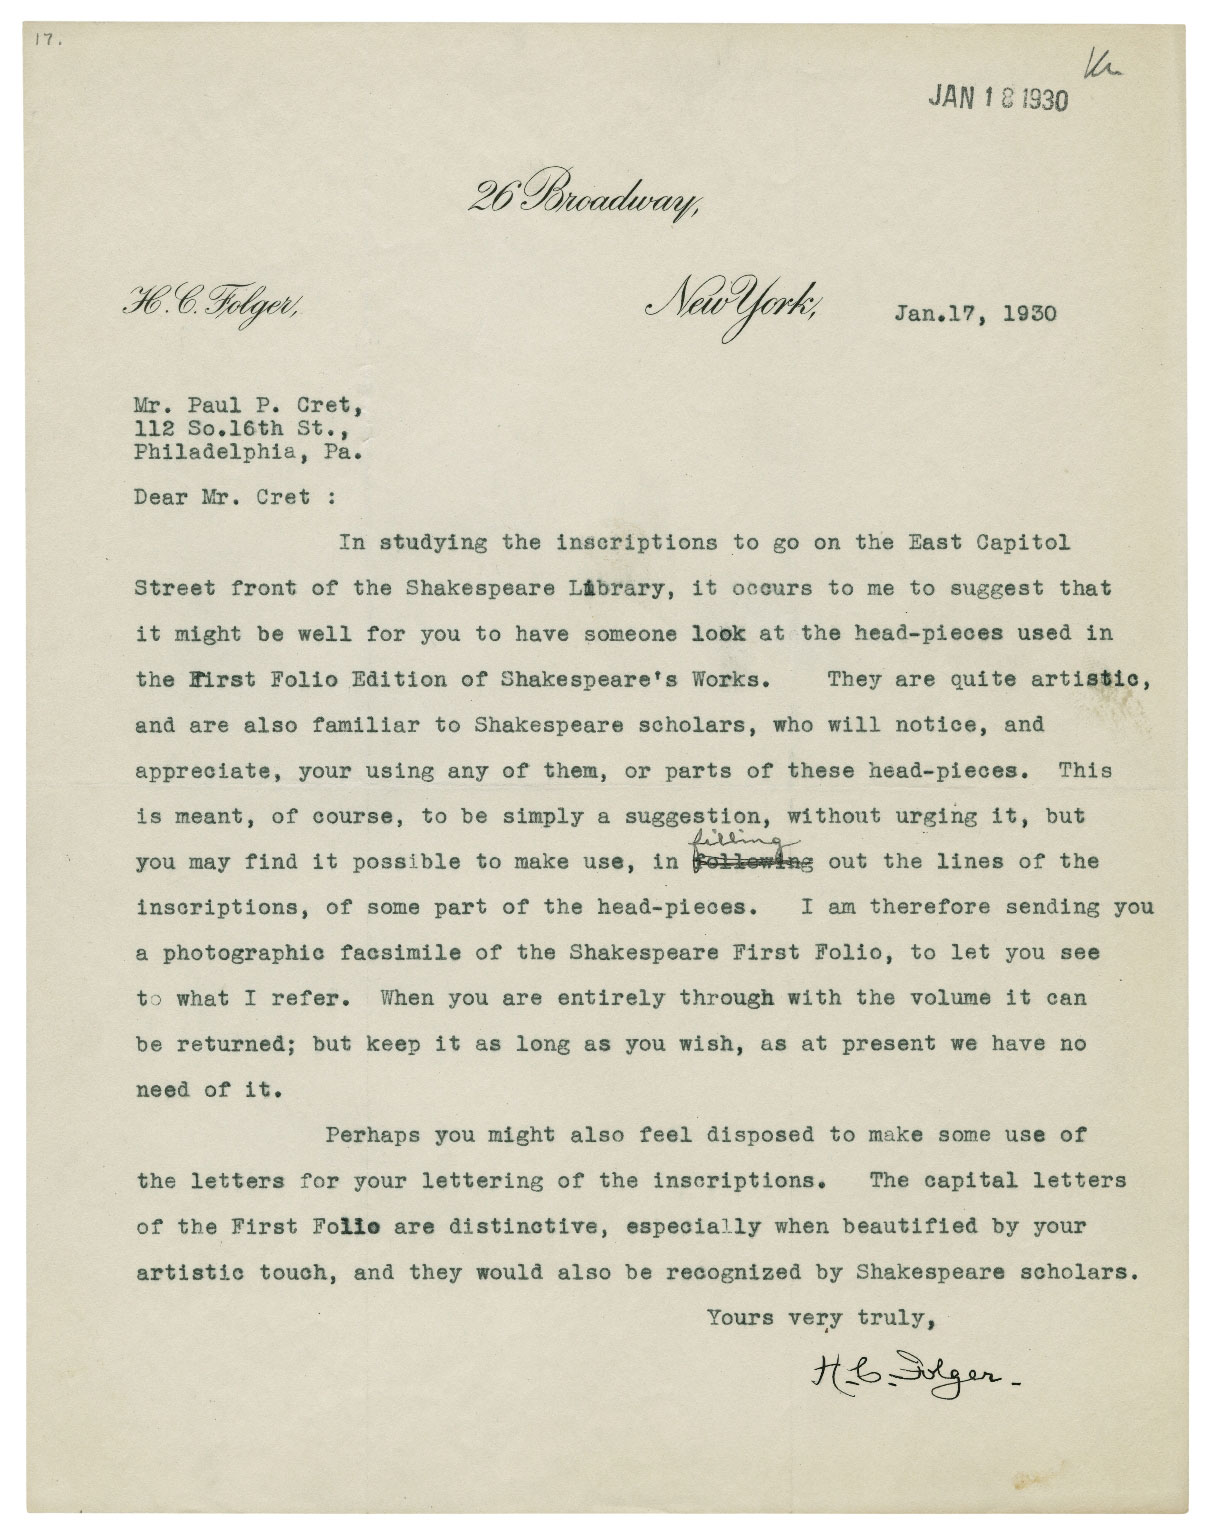 "Letter Folger to Cret 01/17/1930 - Look at First Folio ""head pieces"" for ornamentation of quotations, sending facsimile of First Folio for that purpose, use capitals from First Folio."